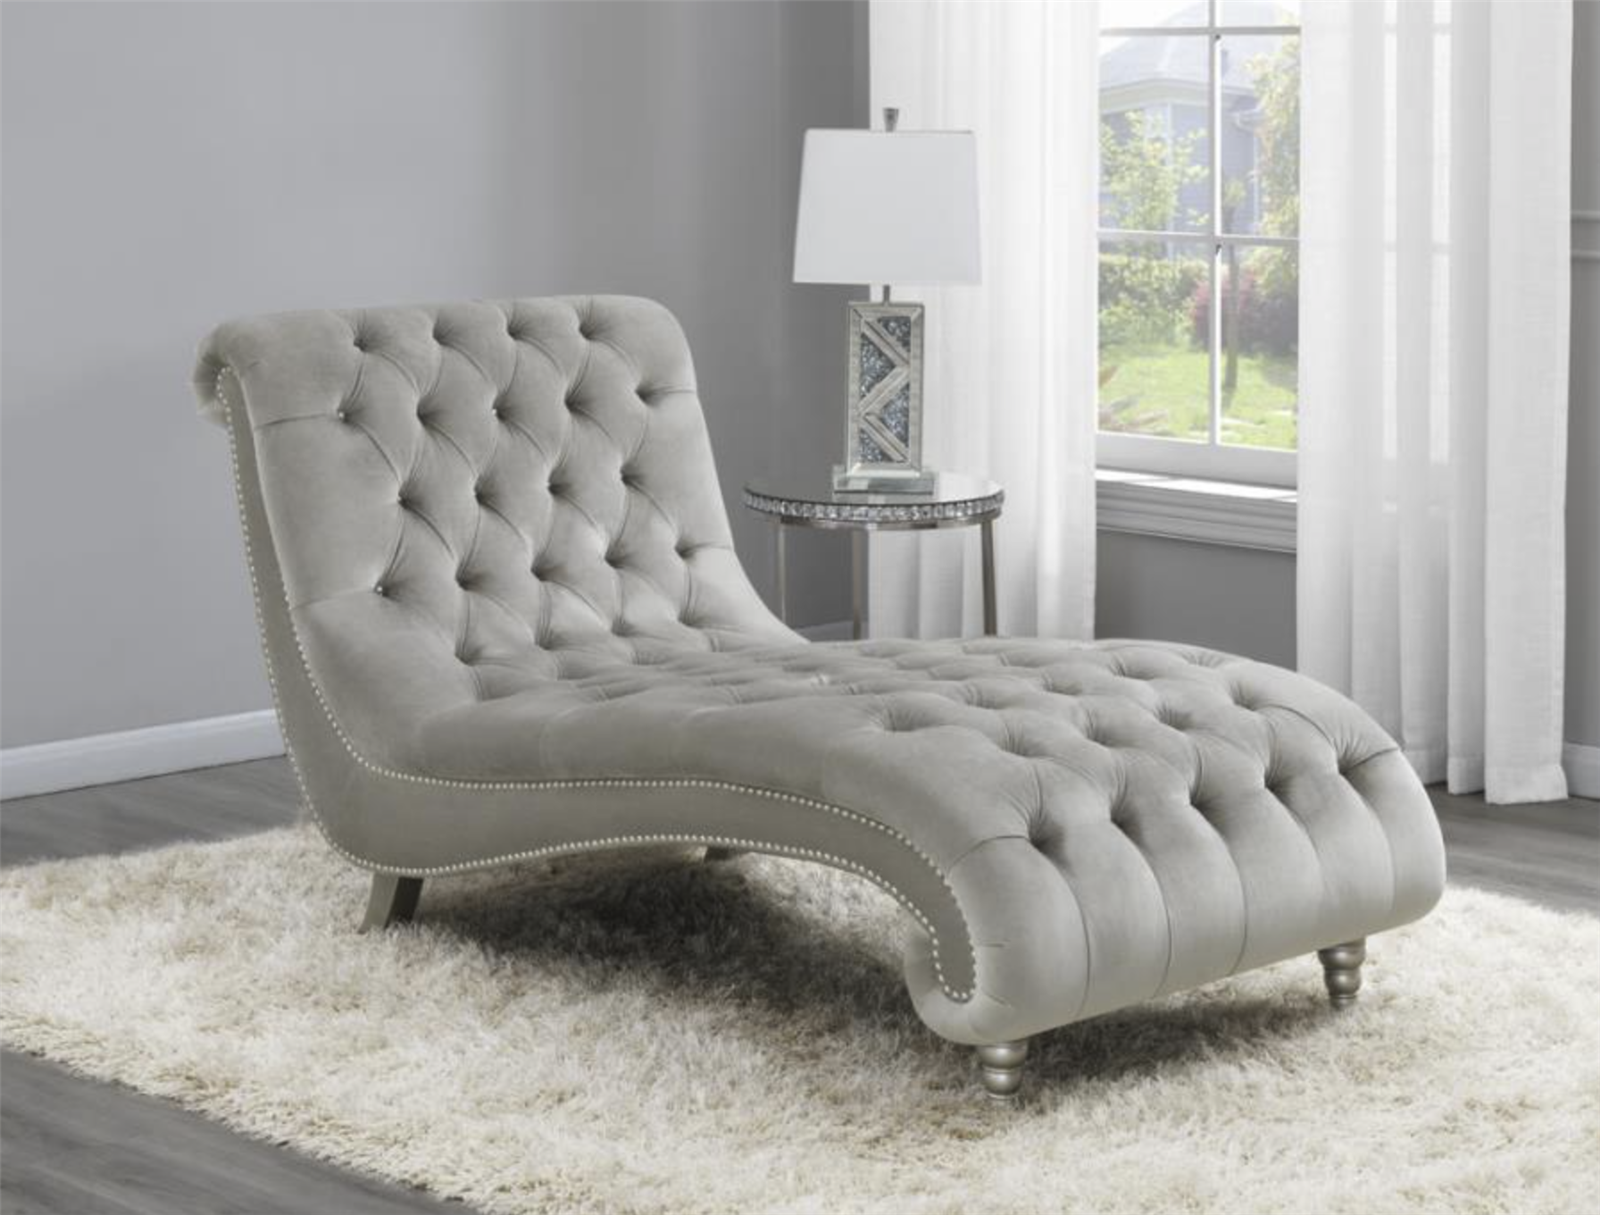 Mikia Chic Charcoal Velvet Tufted Chaise Lounge